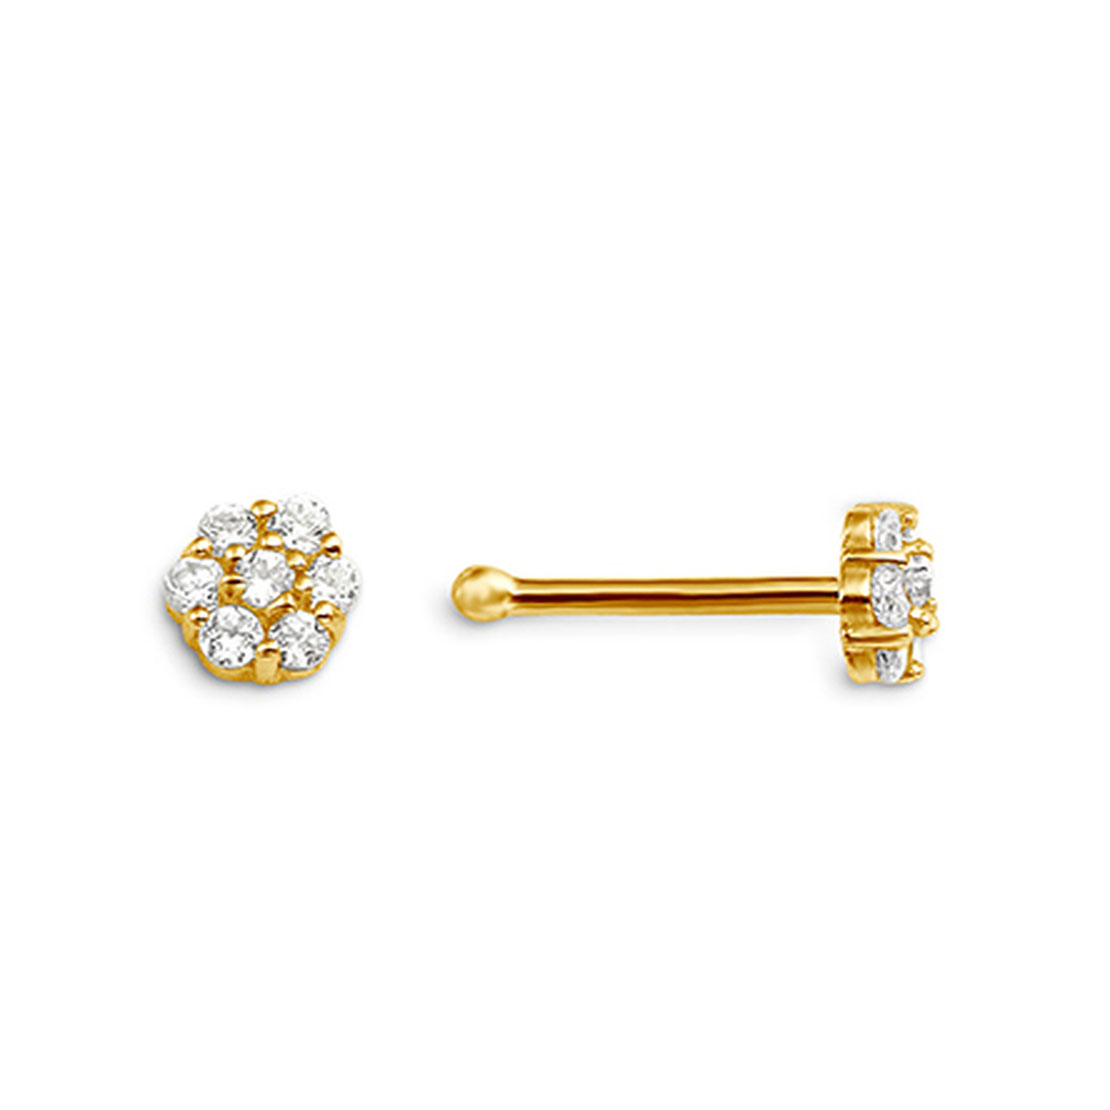 Yellow Gold and Cubic Zirconia Nose Stud